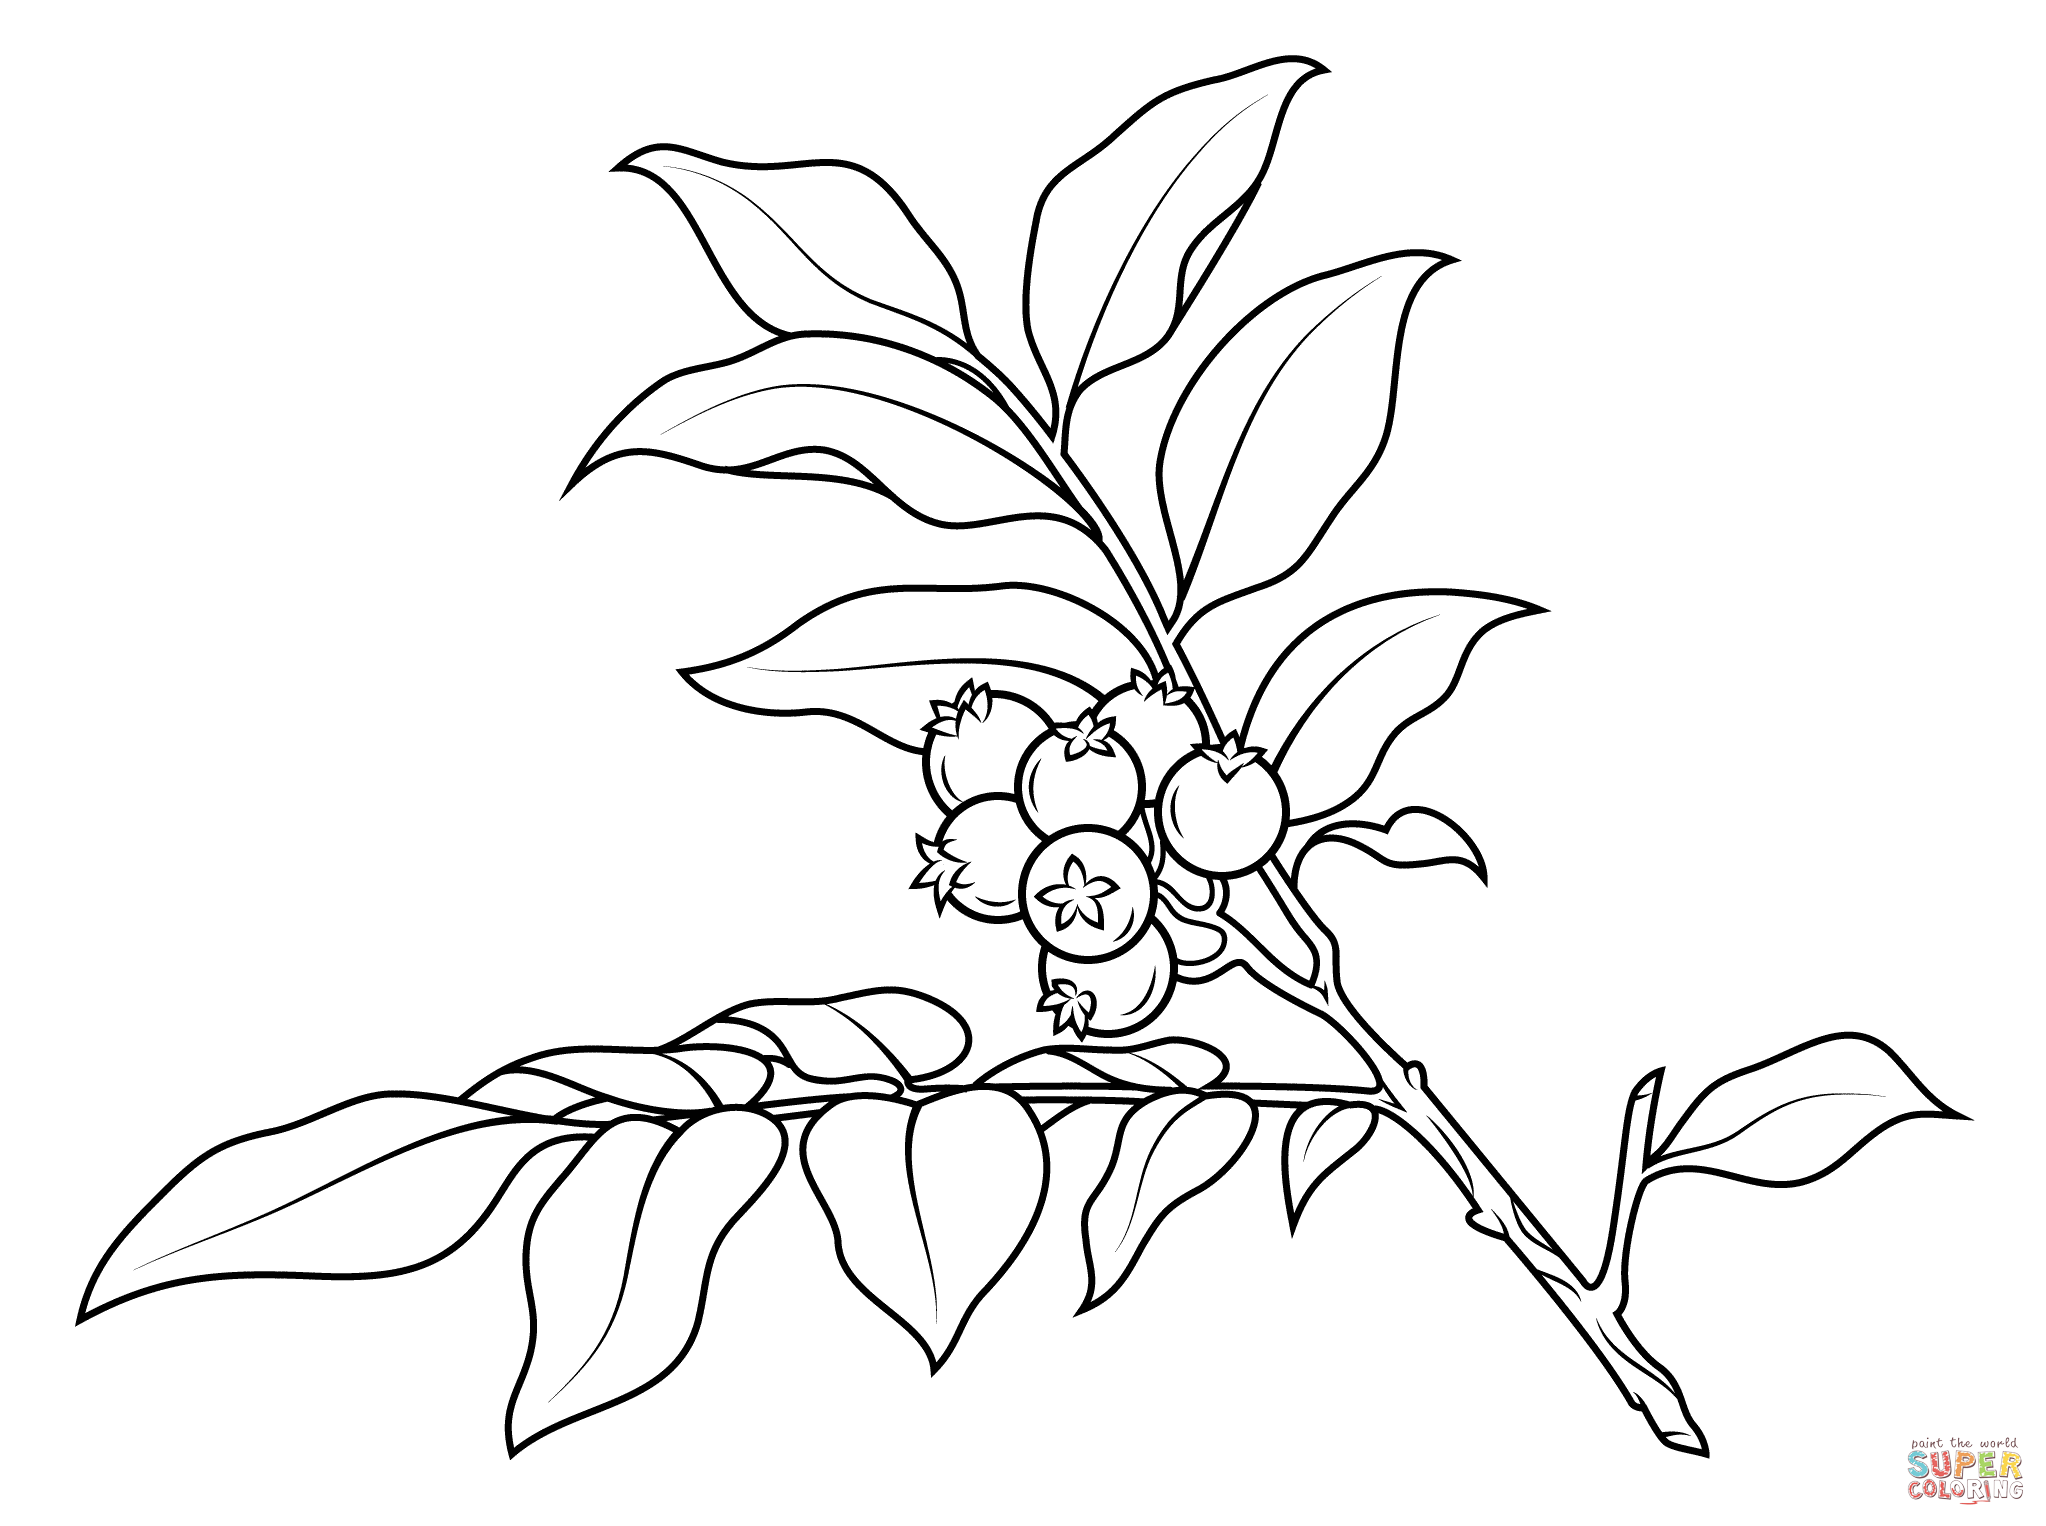 branch coloring page maple tree branch with maple leaf coloring page kids branch coloring page